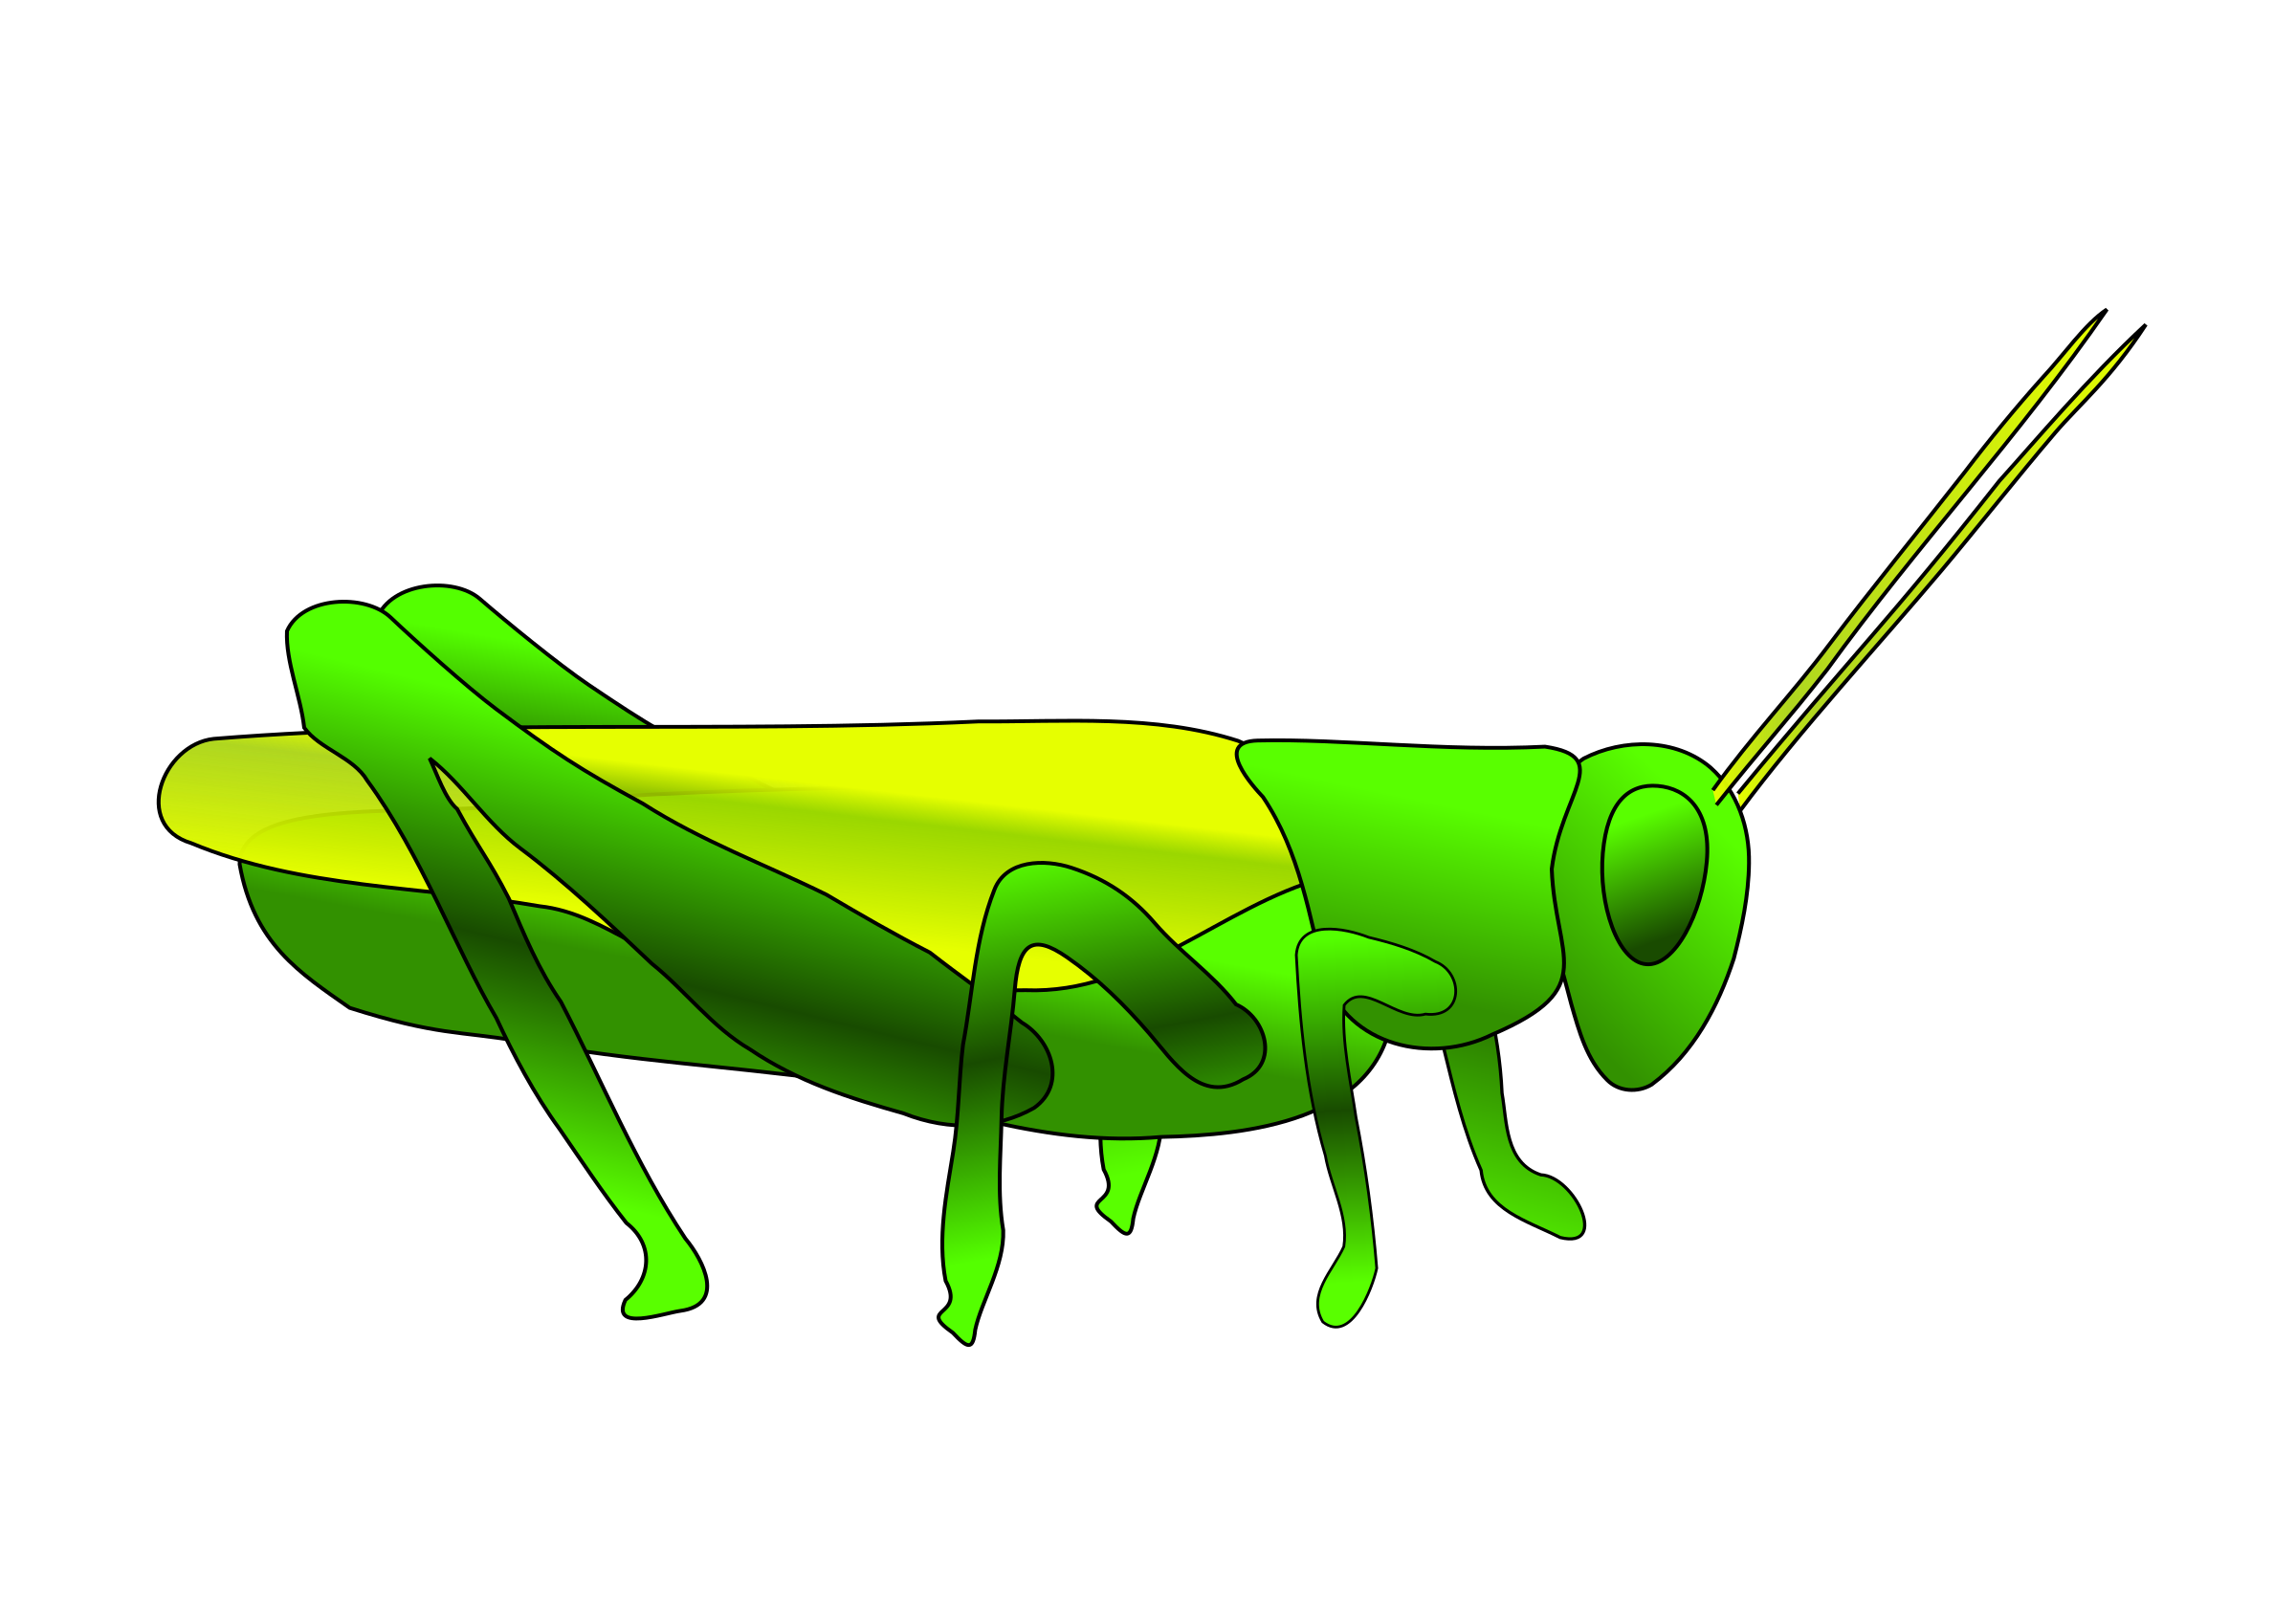 Grasshopper by Jonathon